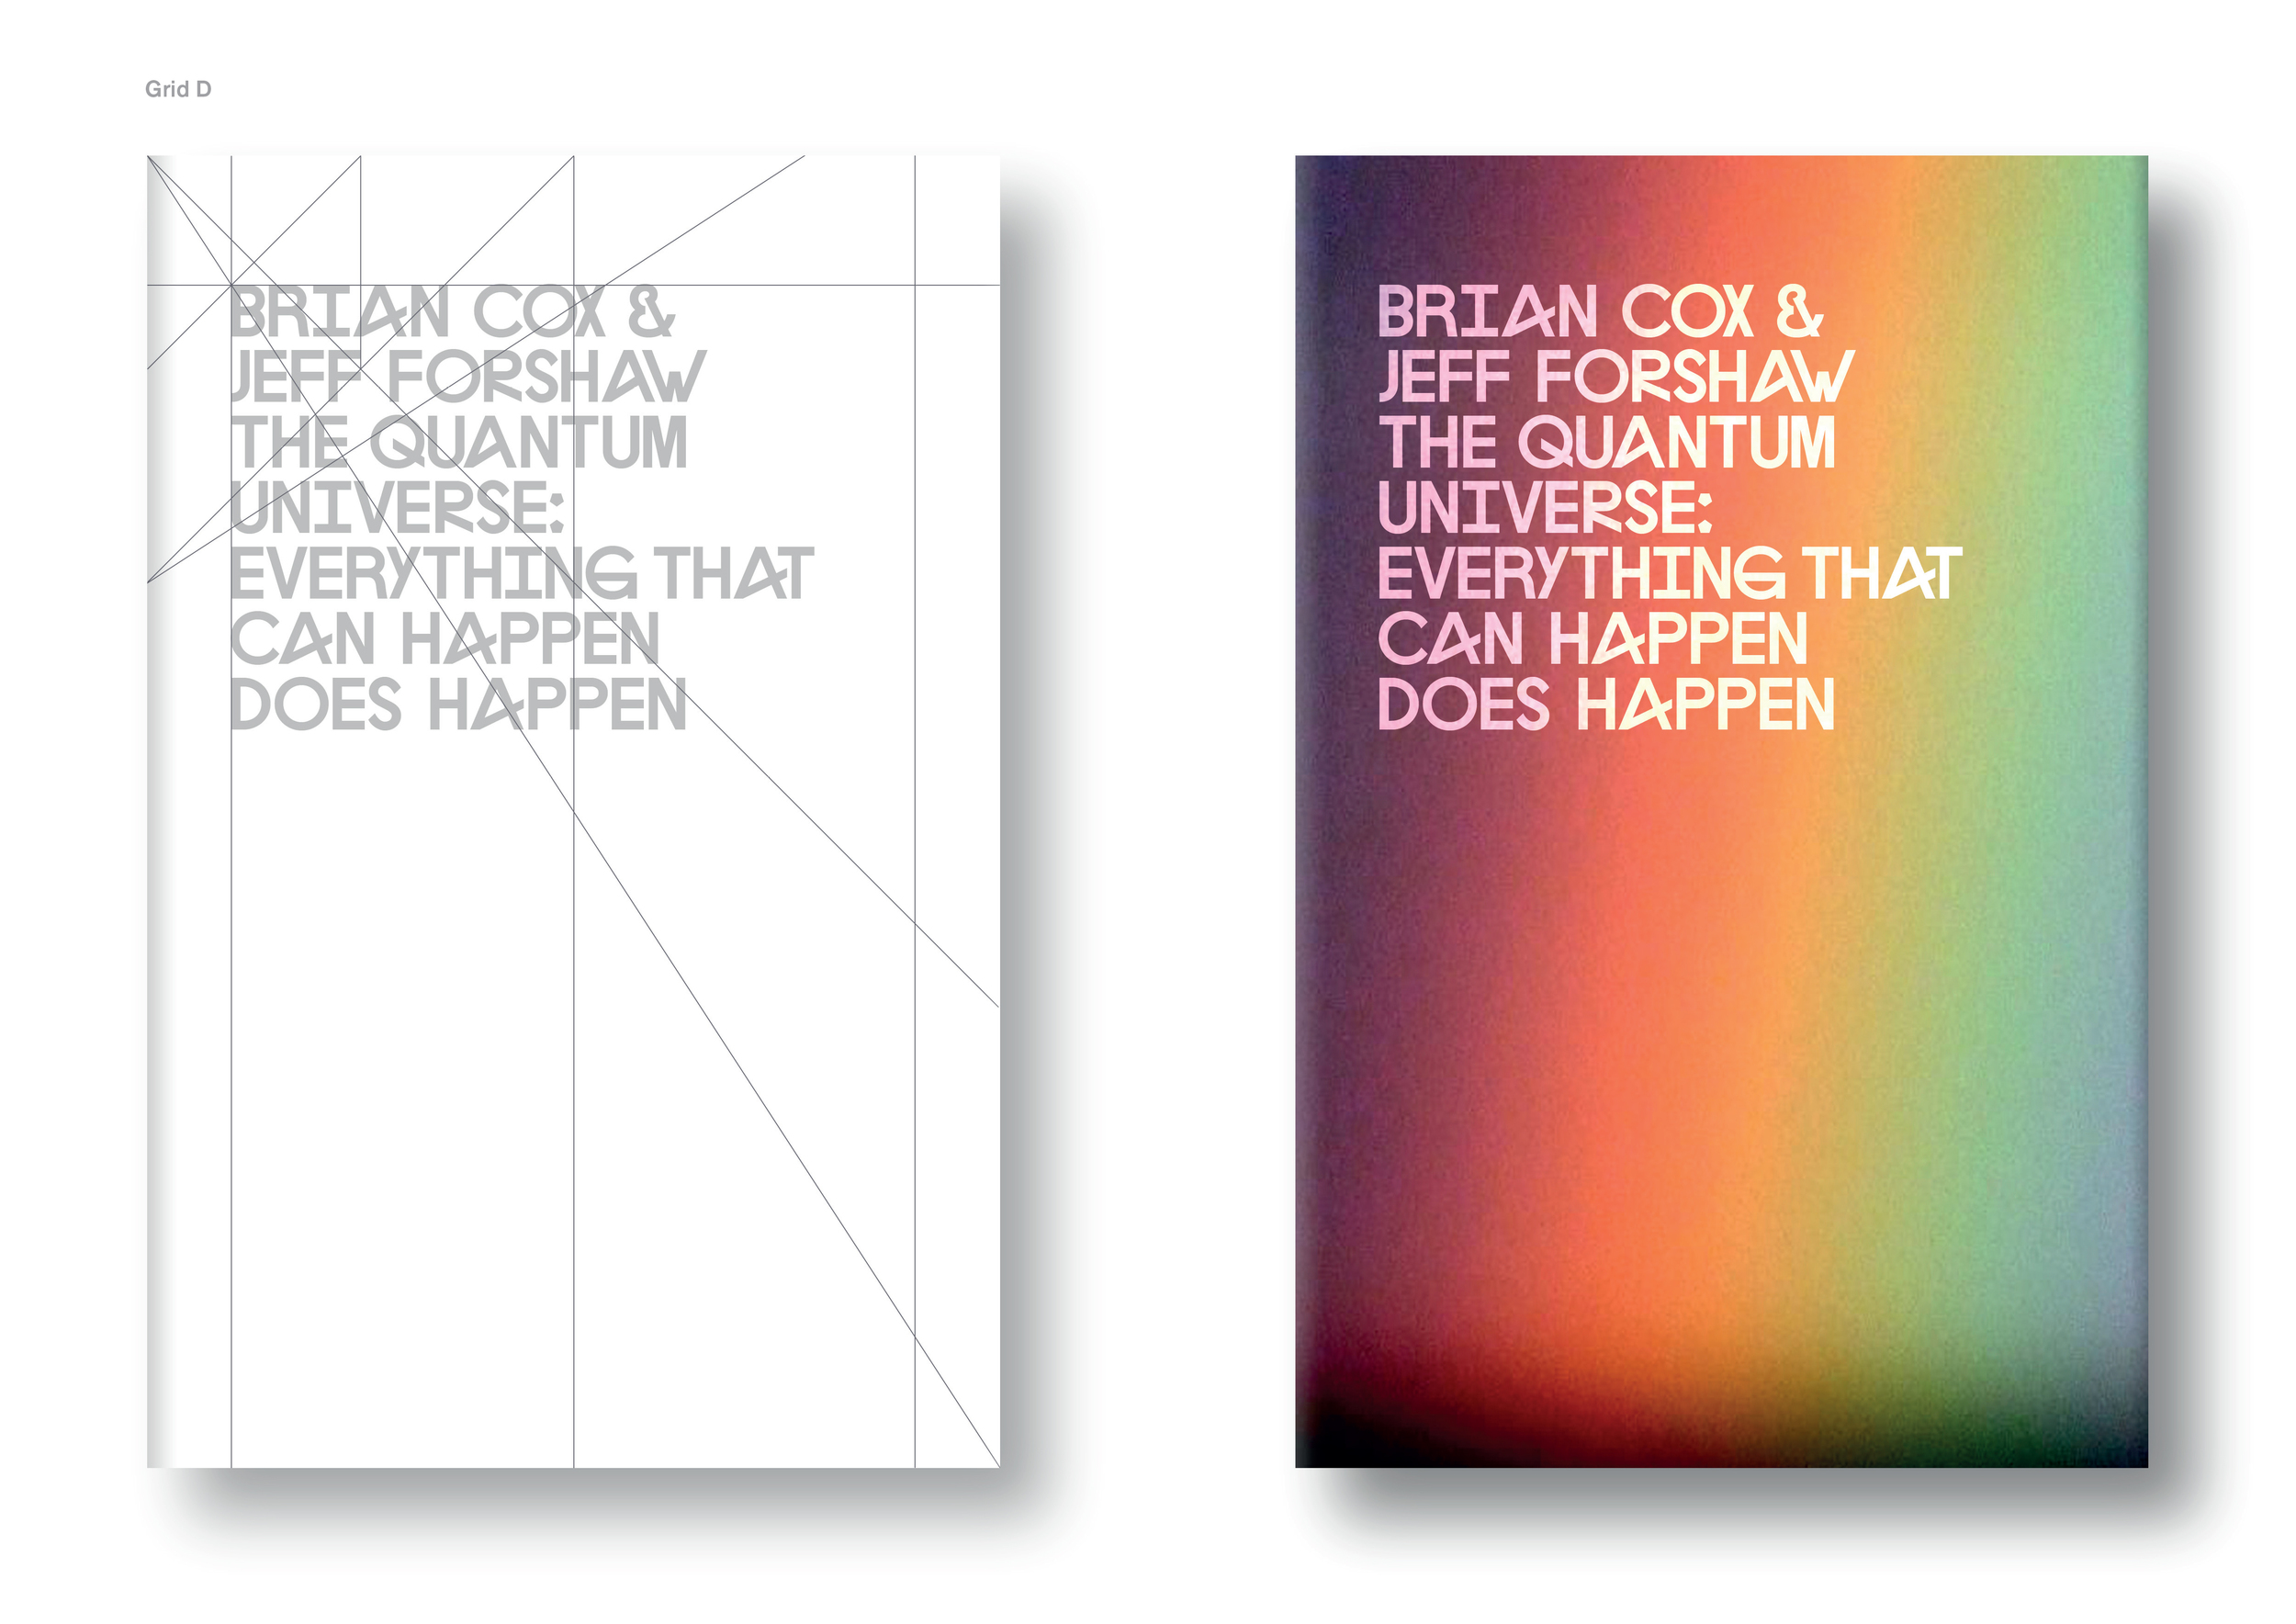 The Quantum Universe by Brian Cox & Jeff Forshaw (hardback edition)  - Art Direction: Peter Saville Design: Jim Stoddart Photograph: Tina Negas